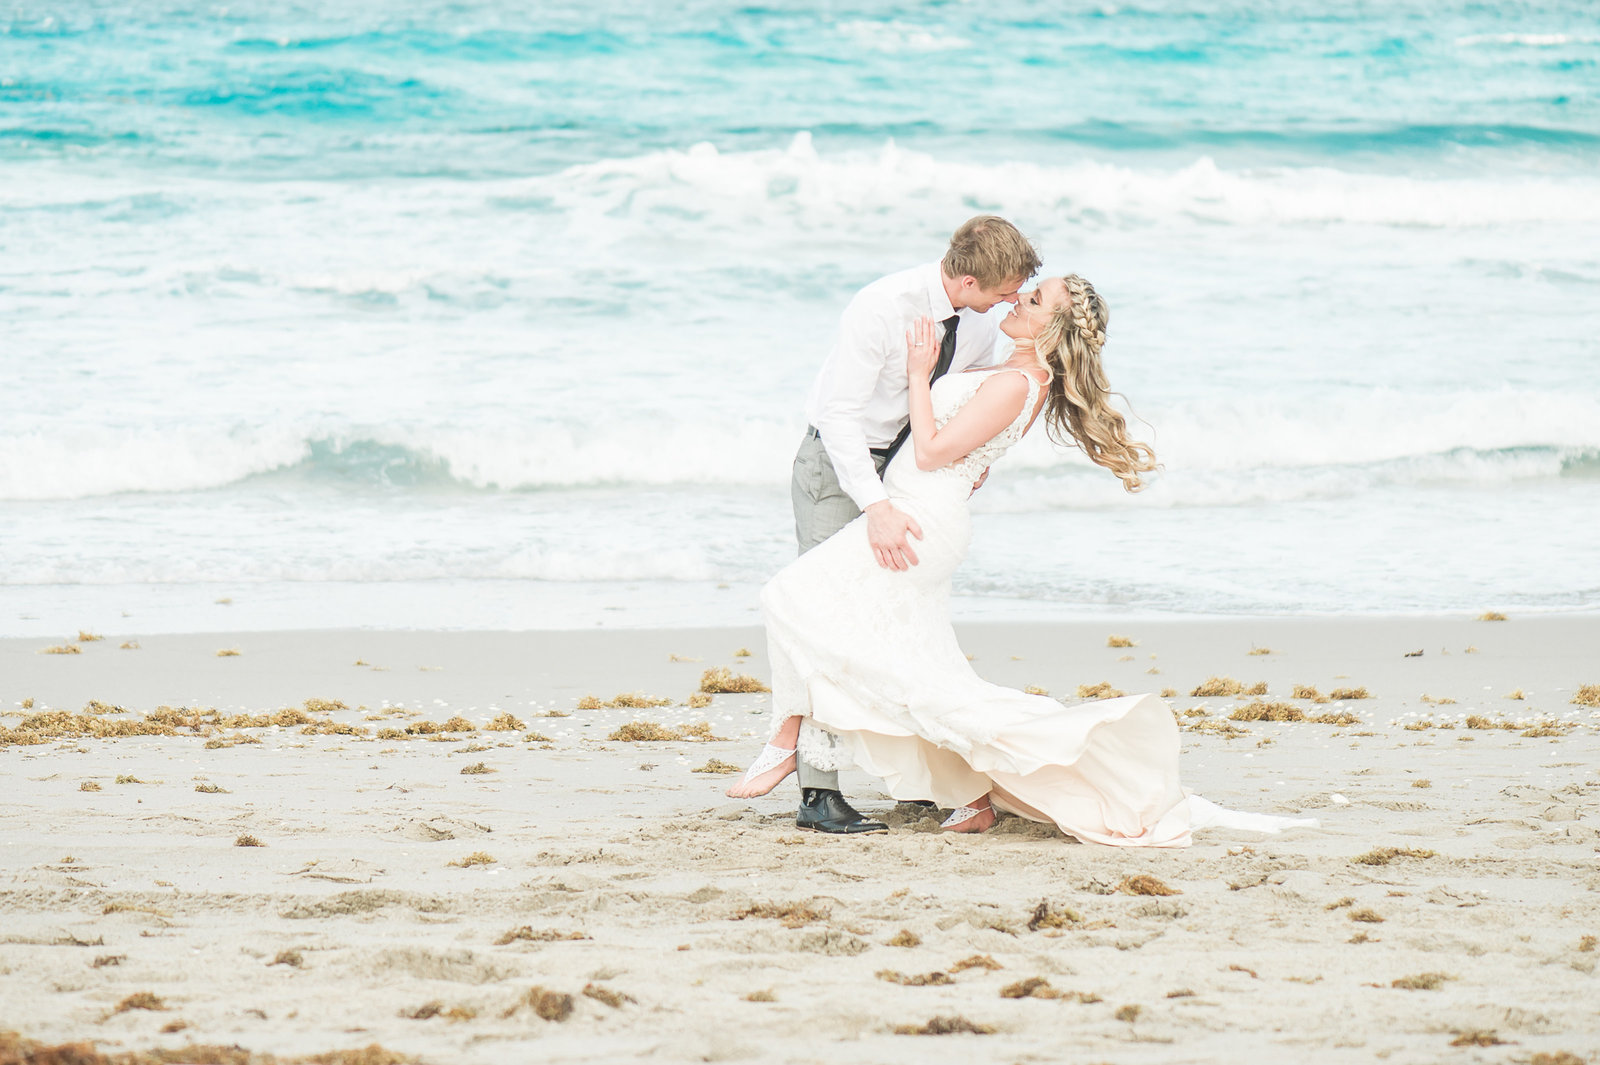 Florida Beach Wedding - Hilton Singer Island Wedding - Palm Beach Wedding Photography by Palm Beach Photography, Inc.